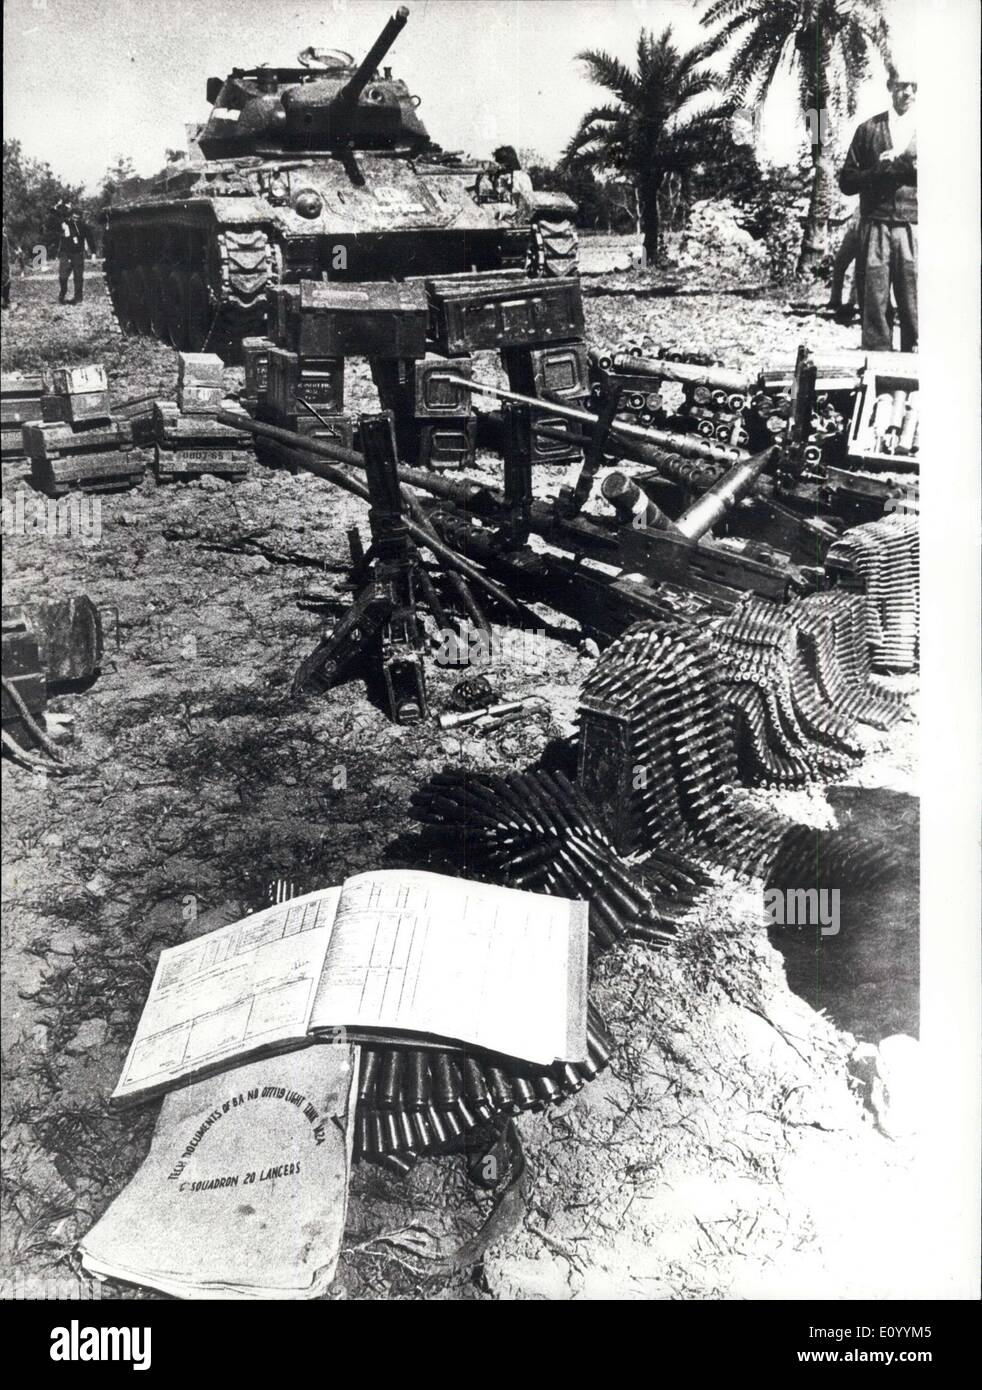 Dec. 07, 1971 - December 7th, 1971 Left behind by Pakistan troops - A huge quantity of araa and ammunition left behind by fleeing Pakistani troops at Garihpur in Bangla Desh after an encounter with the Indian defenoe forces recently. In the foreground are documents seized by Indian troopa fron the damaged and captured tanka that show that the Pakistani troops belonged to C Squadron of 20 lanoers regiment of Pakistan. - Stock Image